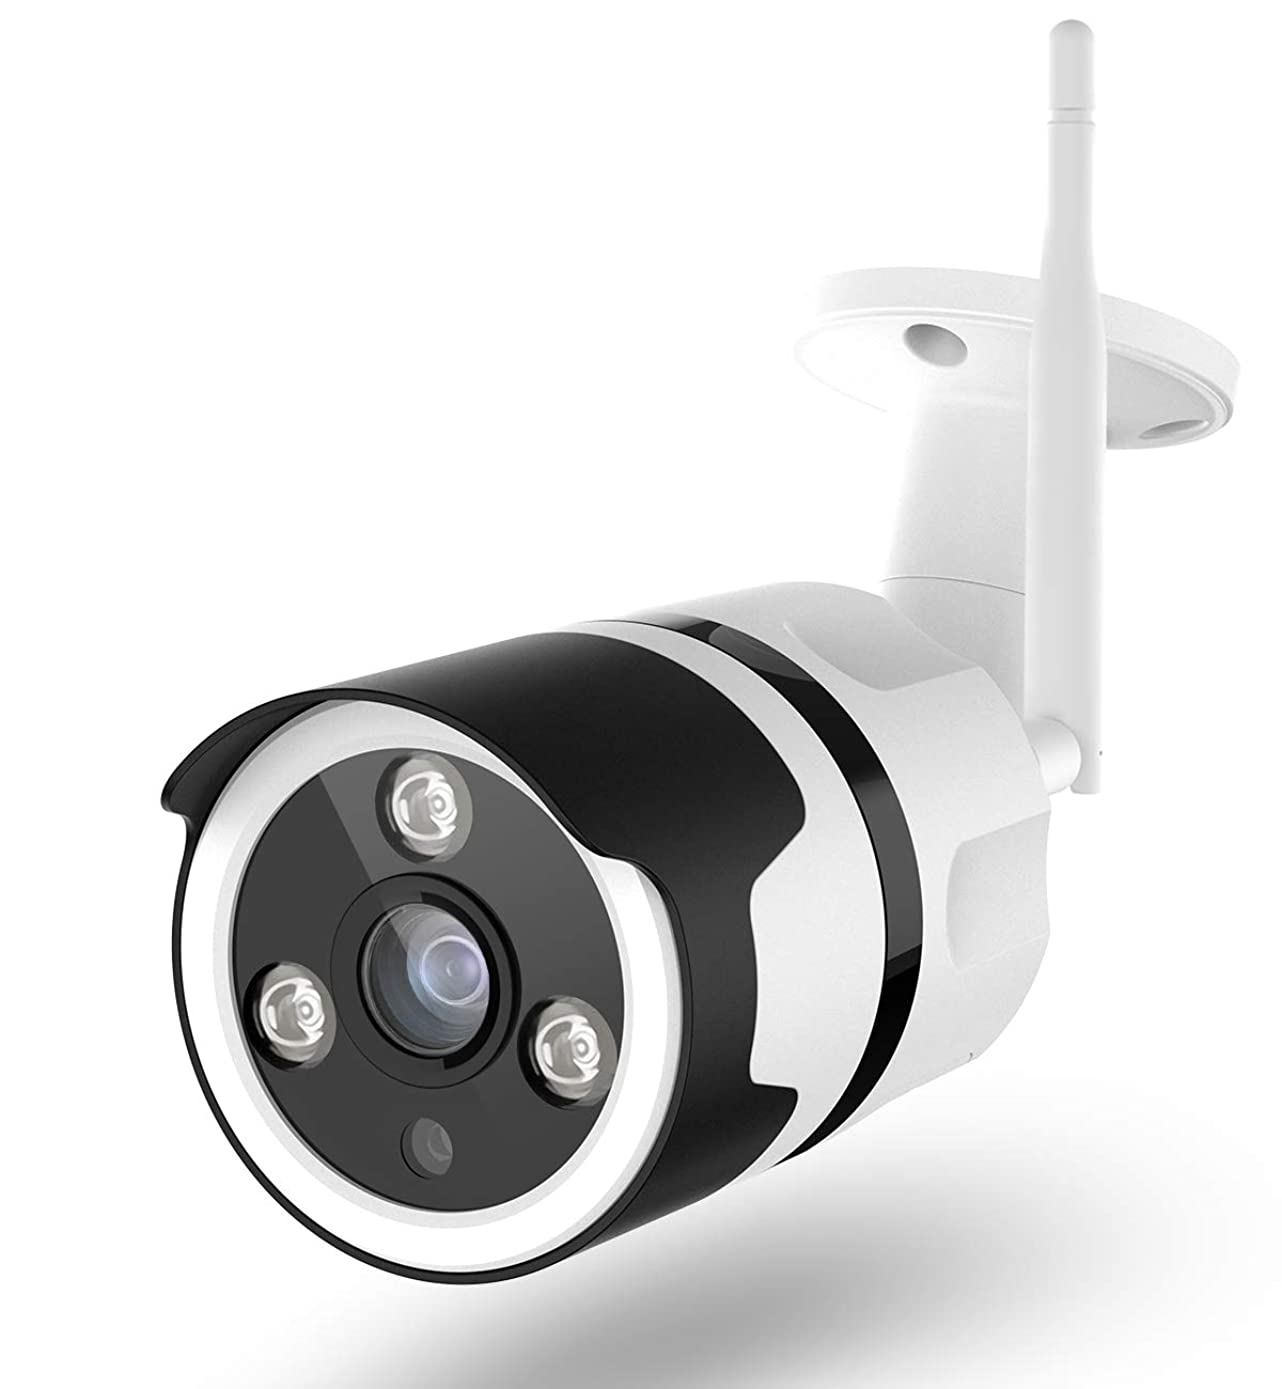 Outdoor Security Camera, 1080P Surveillance Cameras Outdoor WiFi Camera Two-Way Audio, IP66 Waterproof, FHD Night Vision, Motion Detection Camera with Cloud Storage for Videos